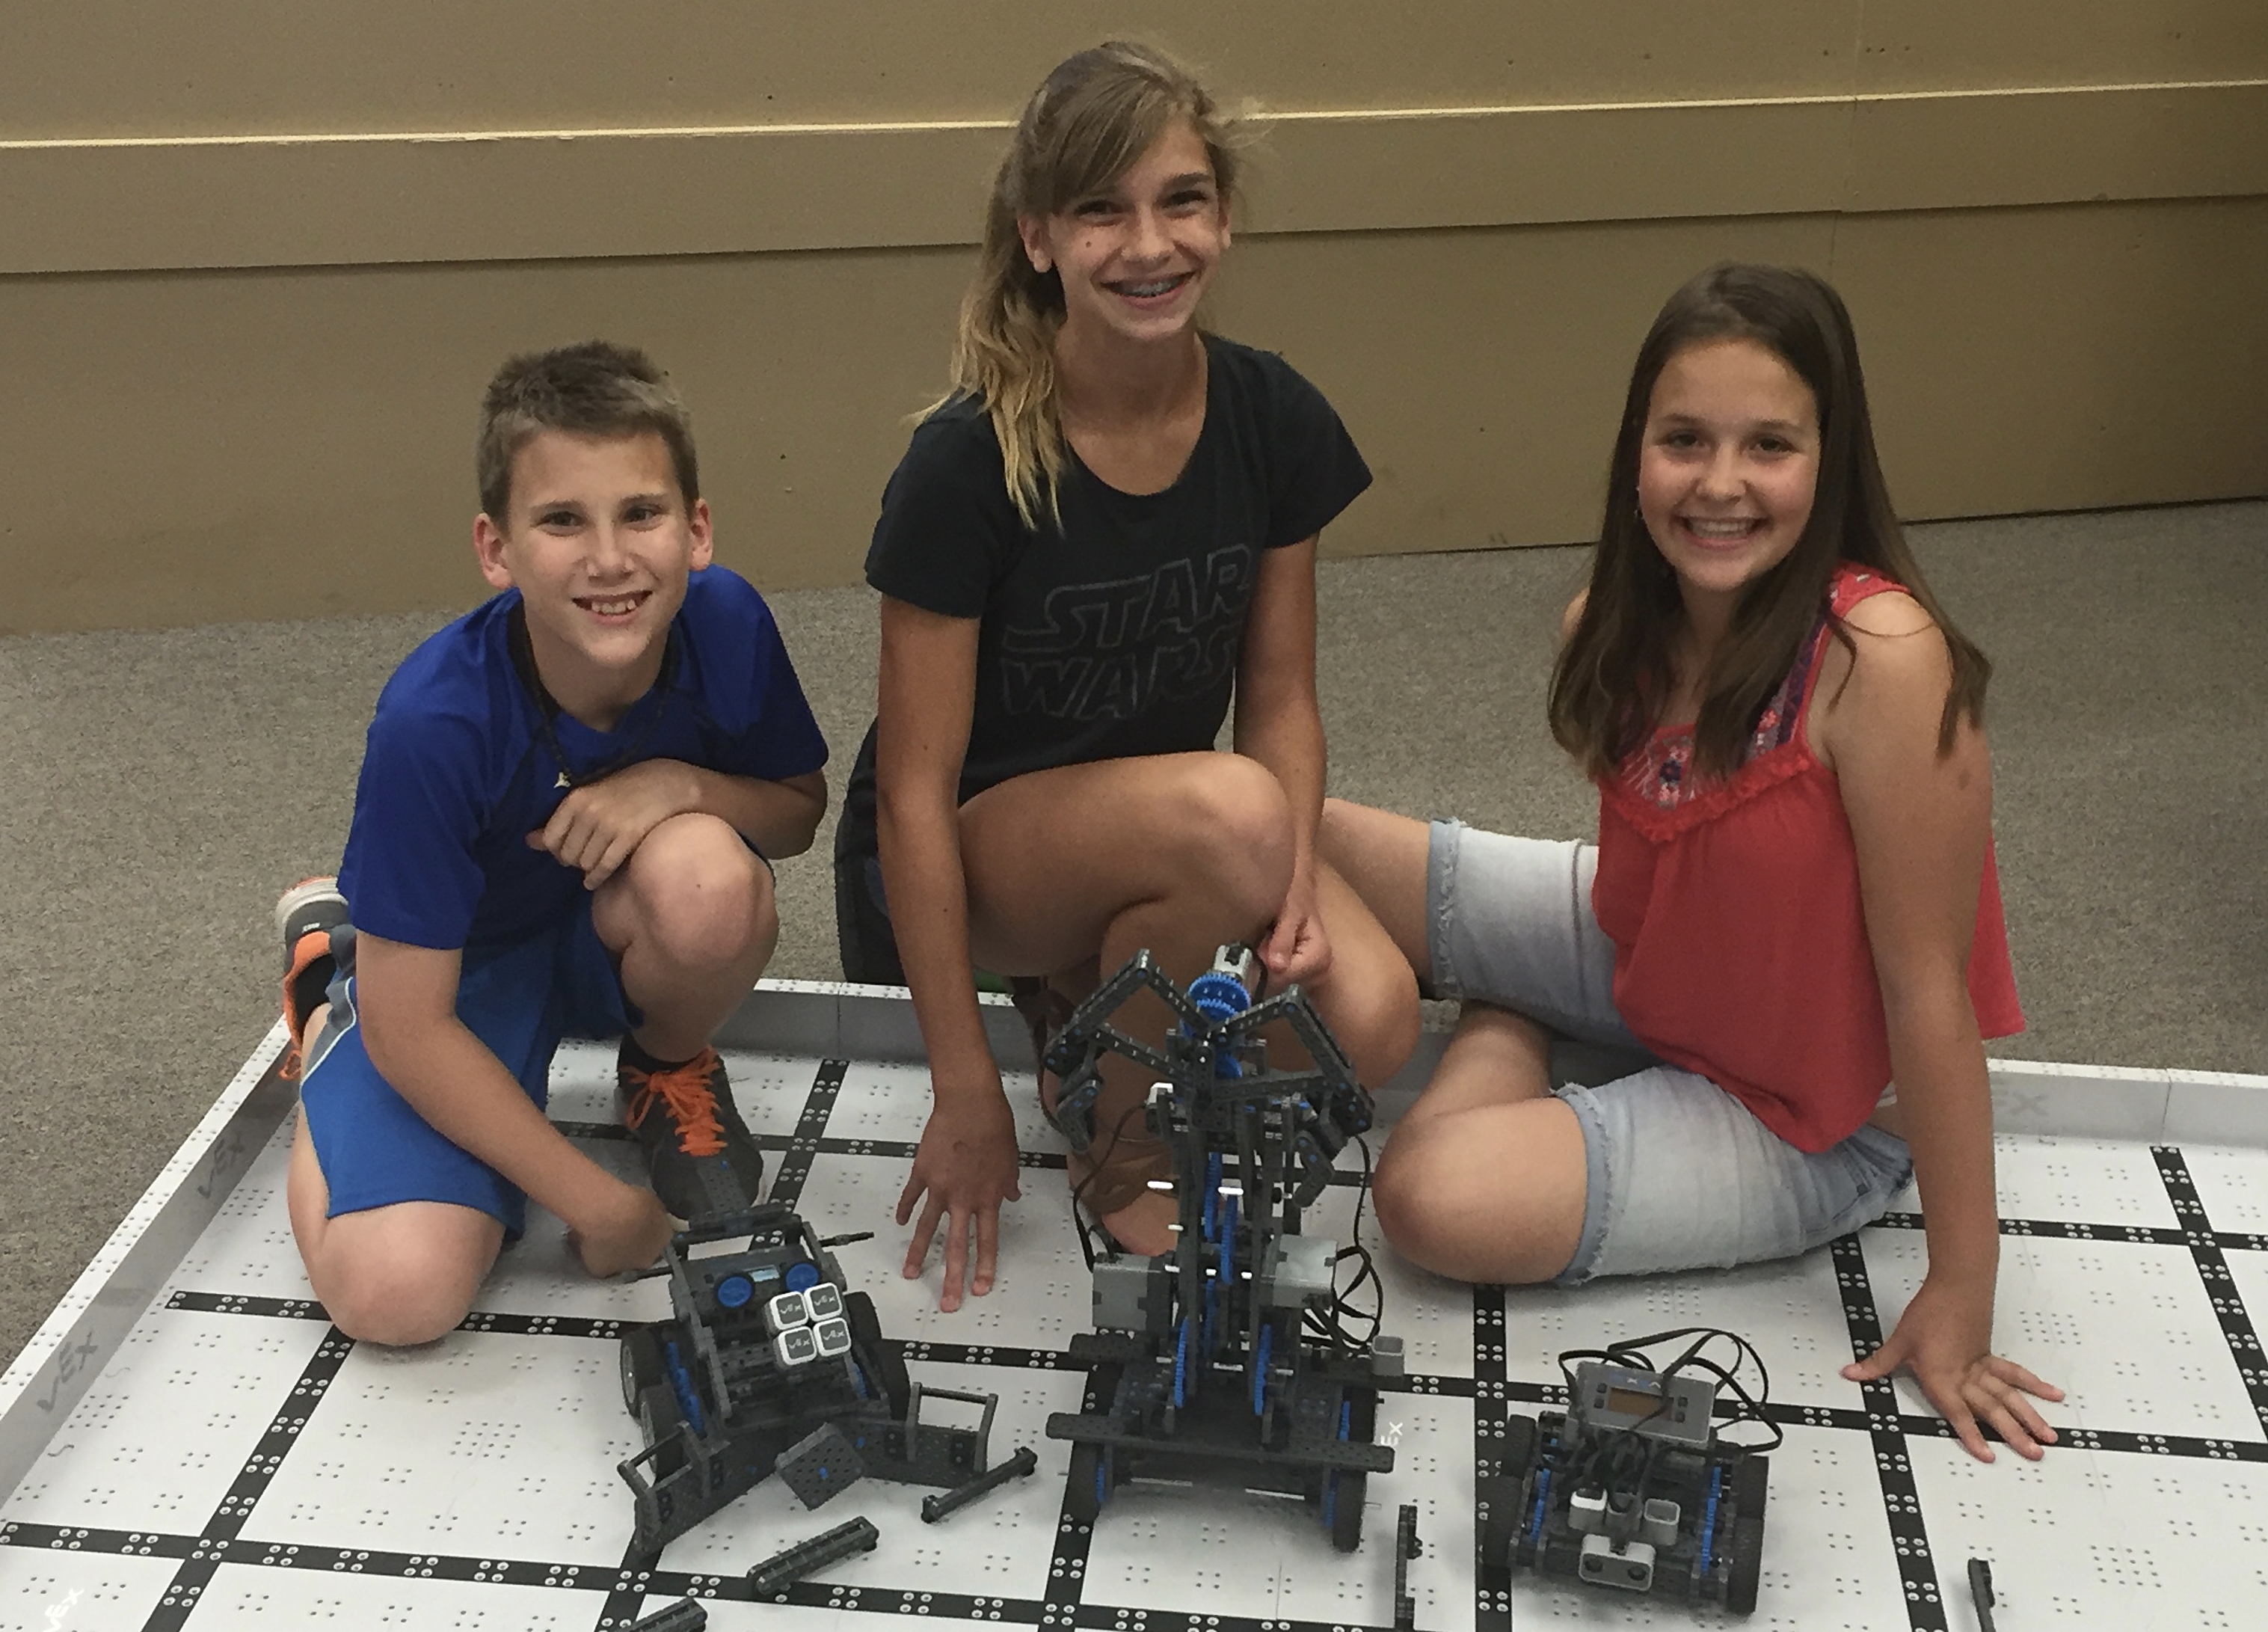 Middle School students participating in Robotics club